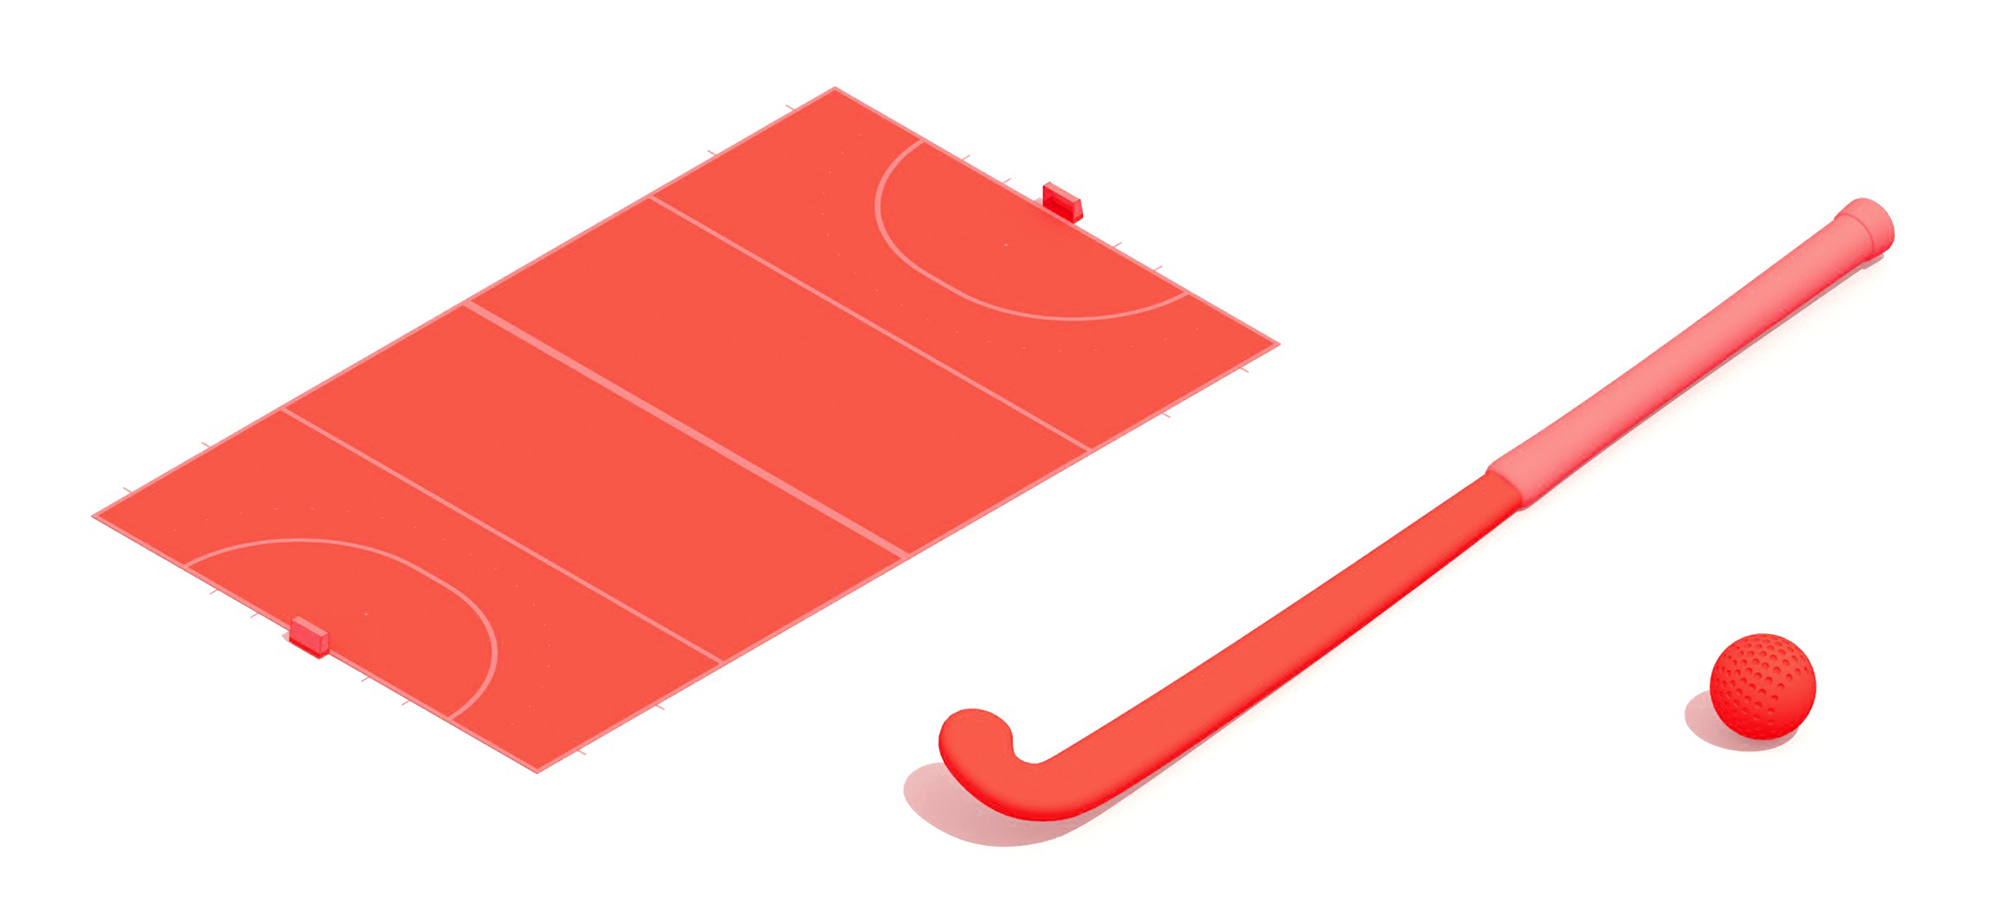 3D collection showing the various components of the sport of Field Hockey including the field hockey pitch, stick and ball